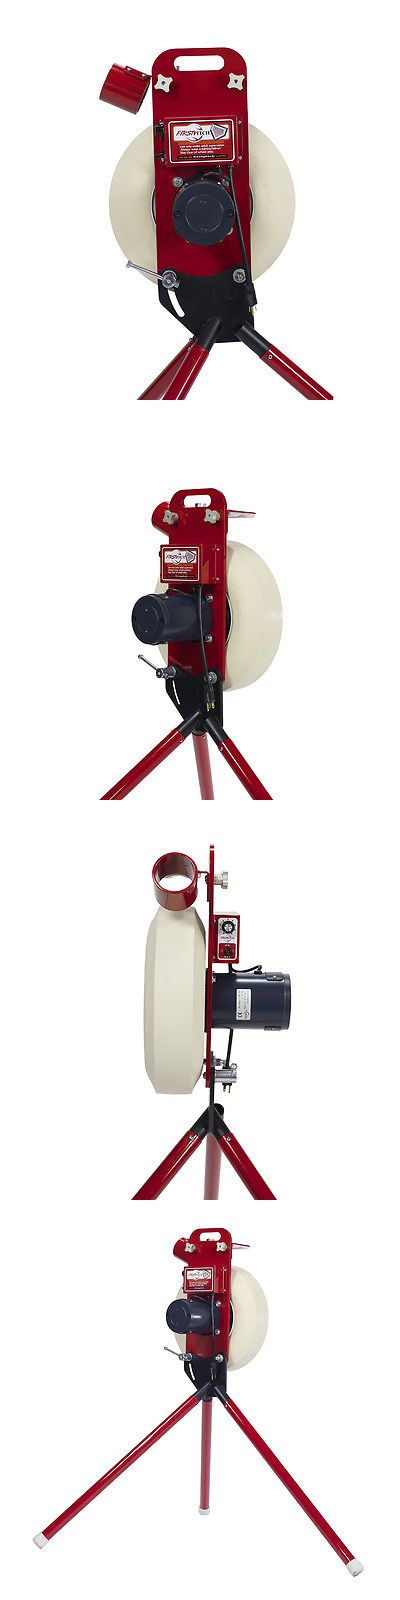 Pitching Machines 58061: First Pitch Original Softball Pitching Machine 80Mph 24 Legs -> BUY IT NOW ONLY: $899 on eBay!